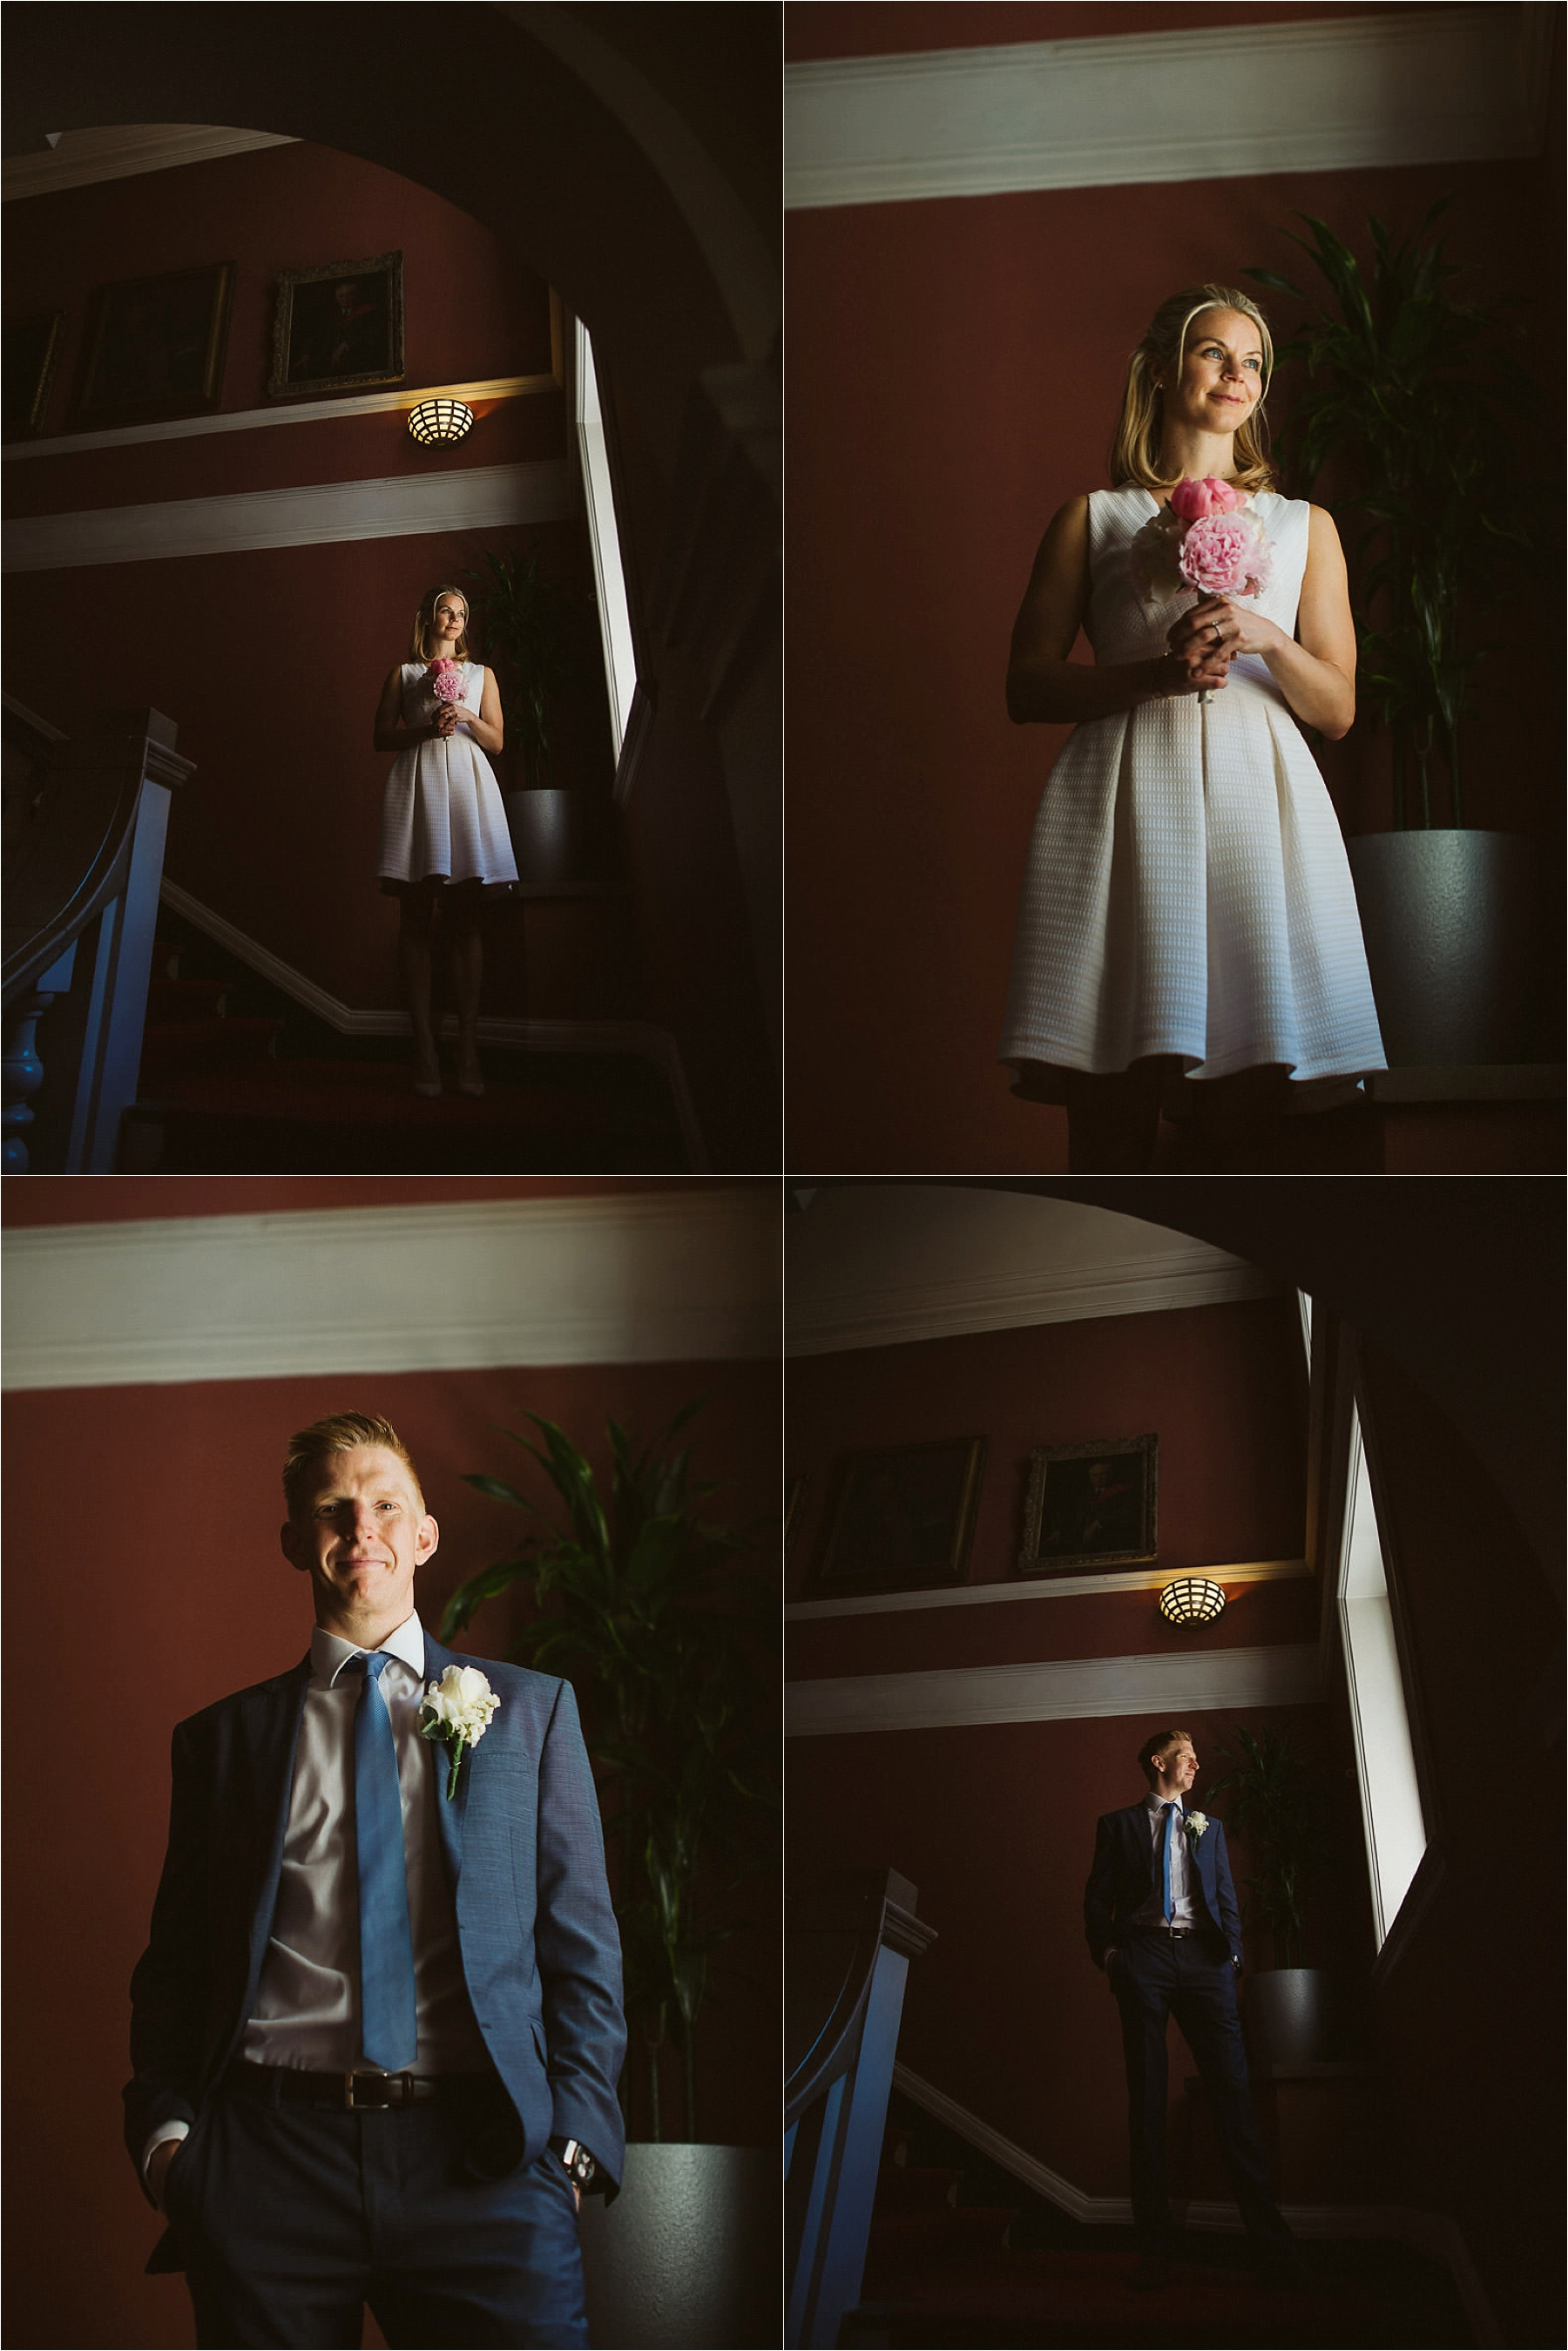 couple portraits taken during a civil wedding at chelsear register office